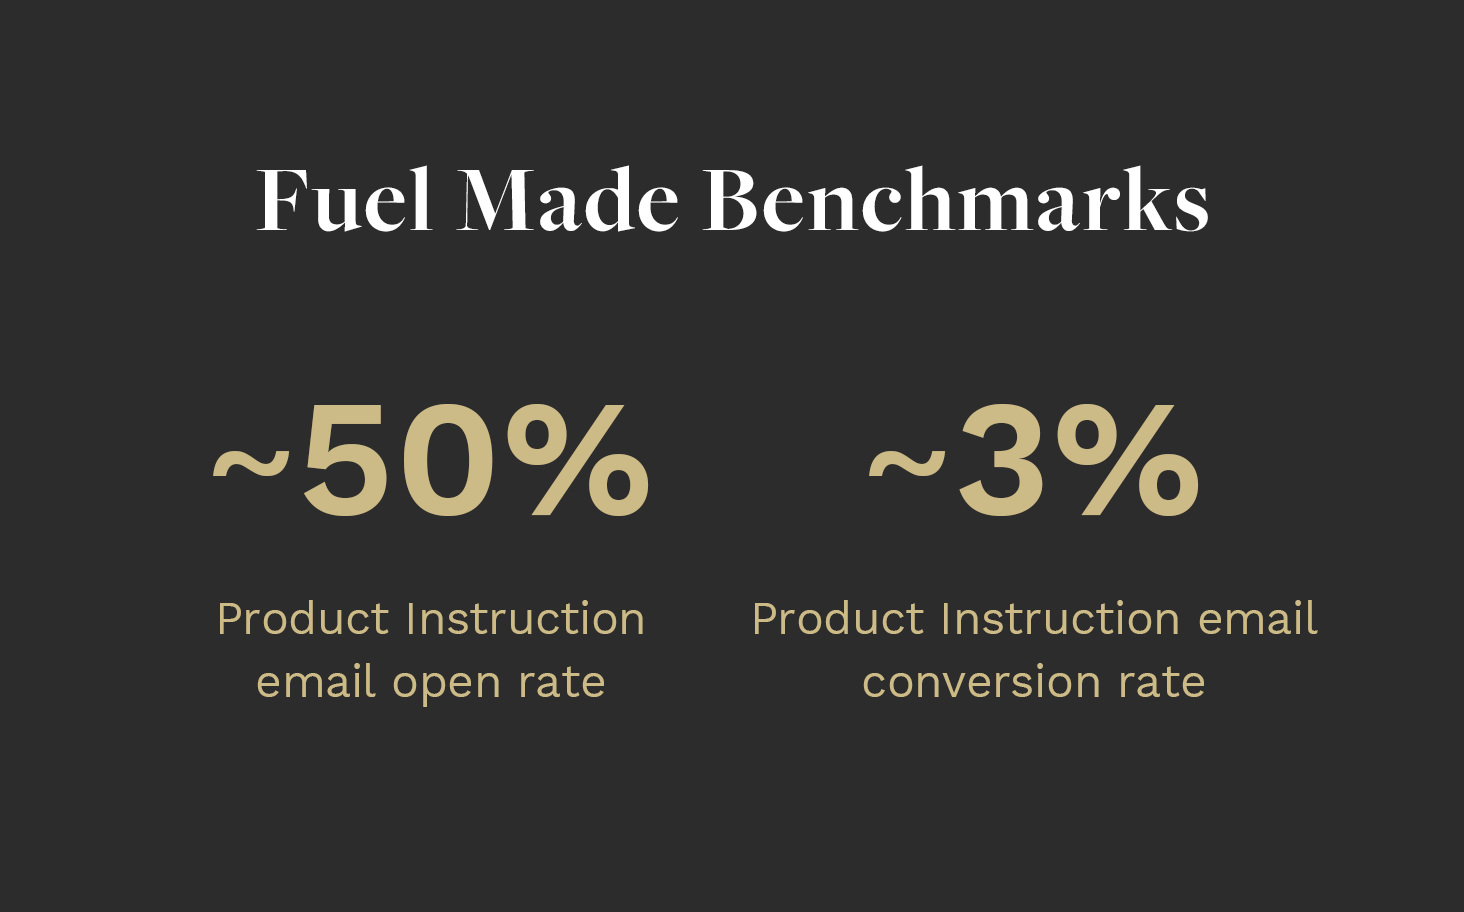 Product Instruction Benchmarks